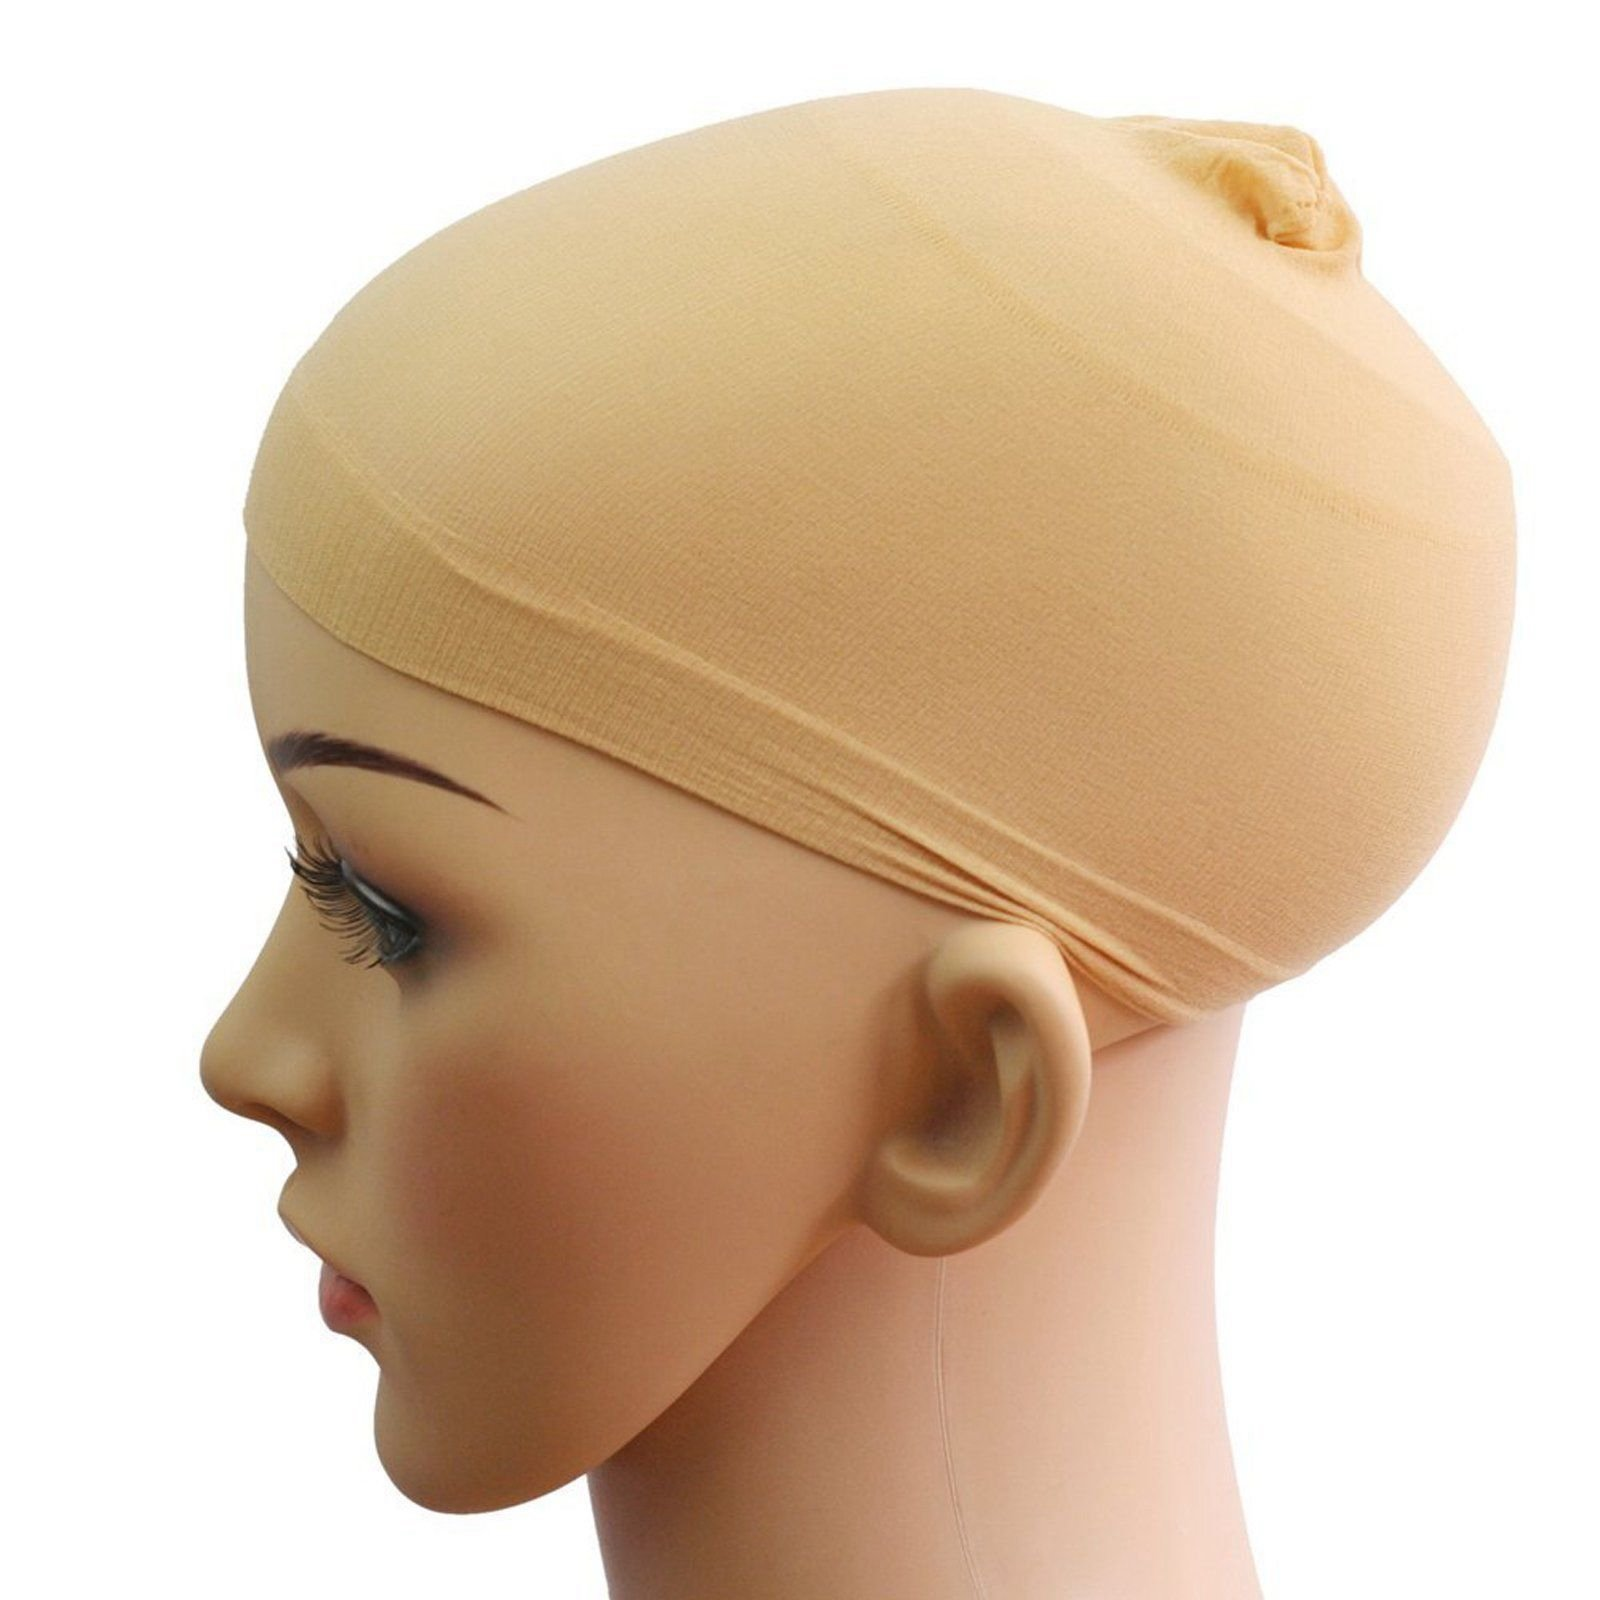 12 Pieces One Size Fits All Hair Net Skin Color Nylon Wig Caps for Women, Kids and Men by Meiyoo2 (Natural Nude Beige) by Meiyoo (Image #5)